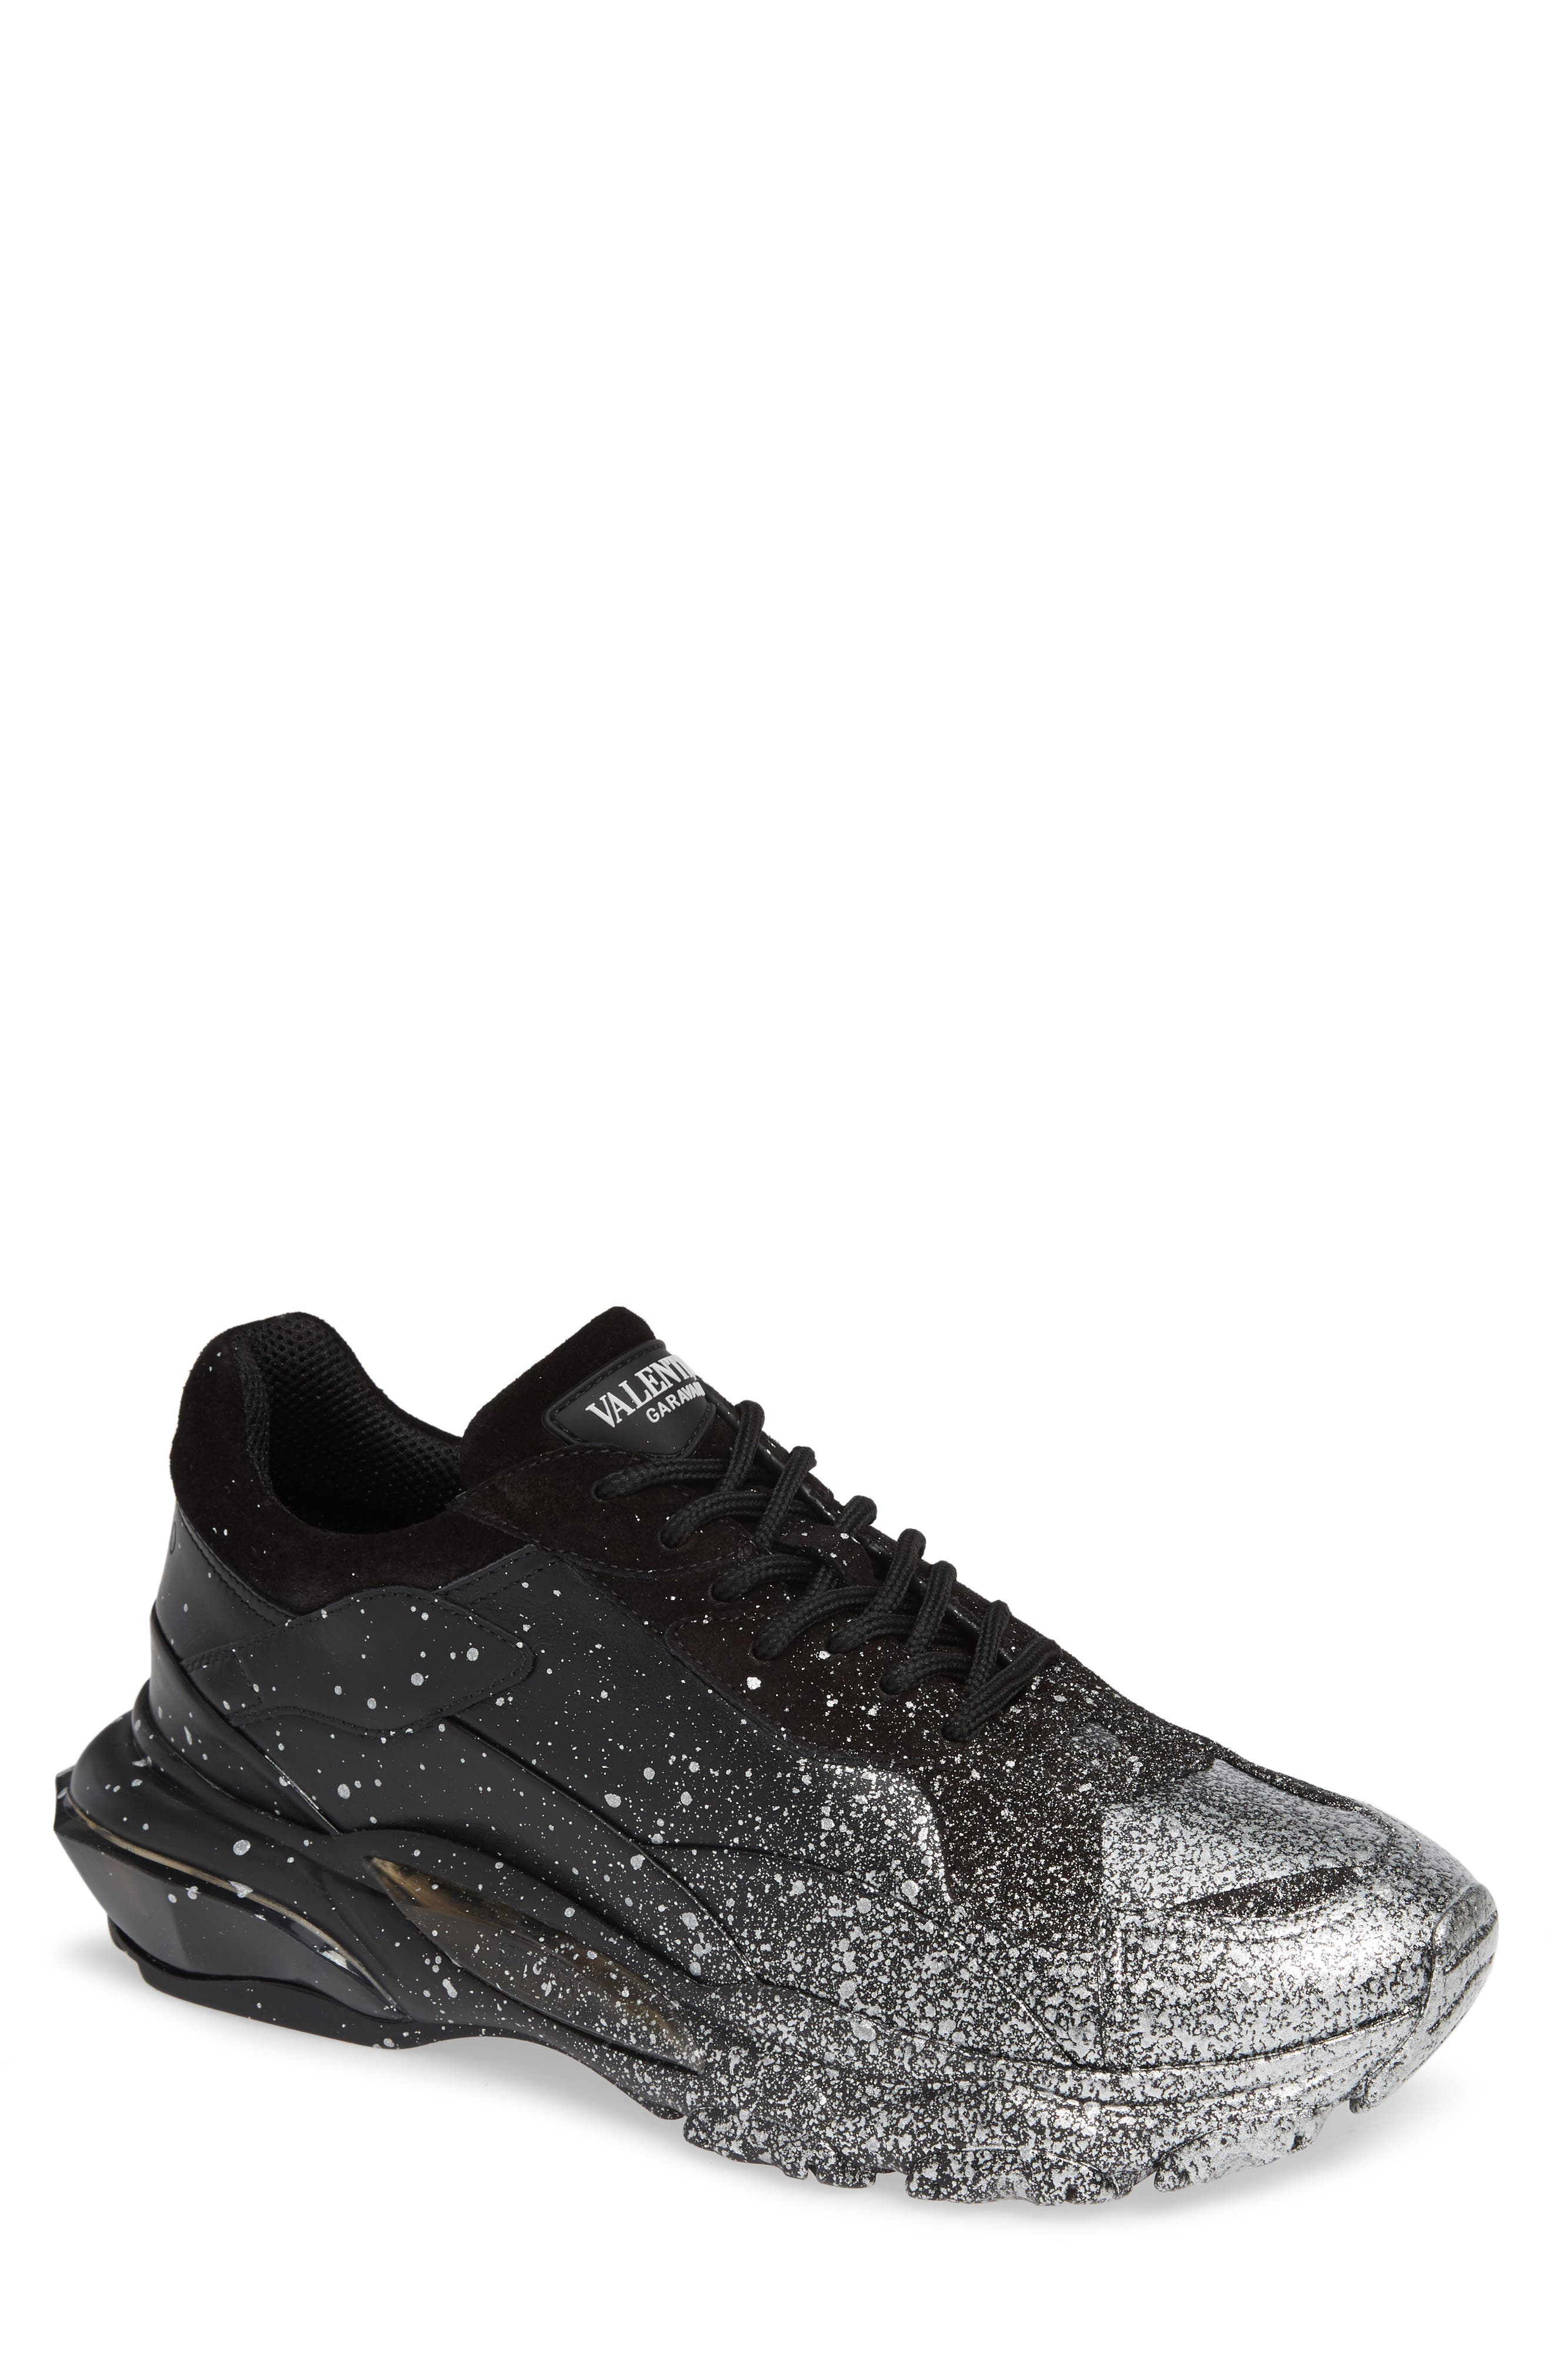 Bounce Paint Splatter Sneaker,                             Main thumbnail 1, color,                             BLACK/ SILVER